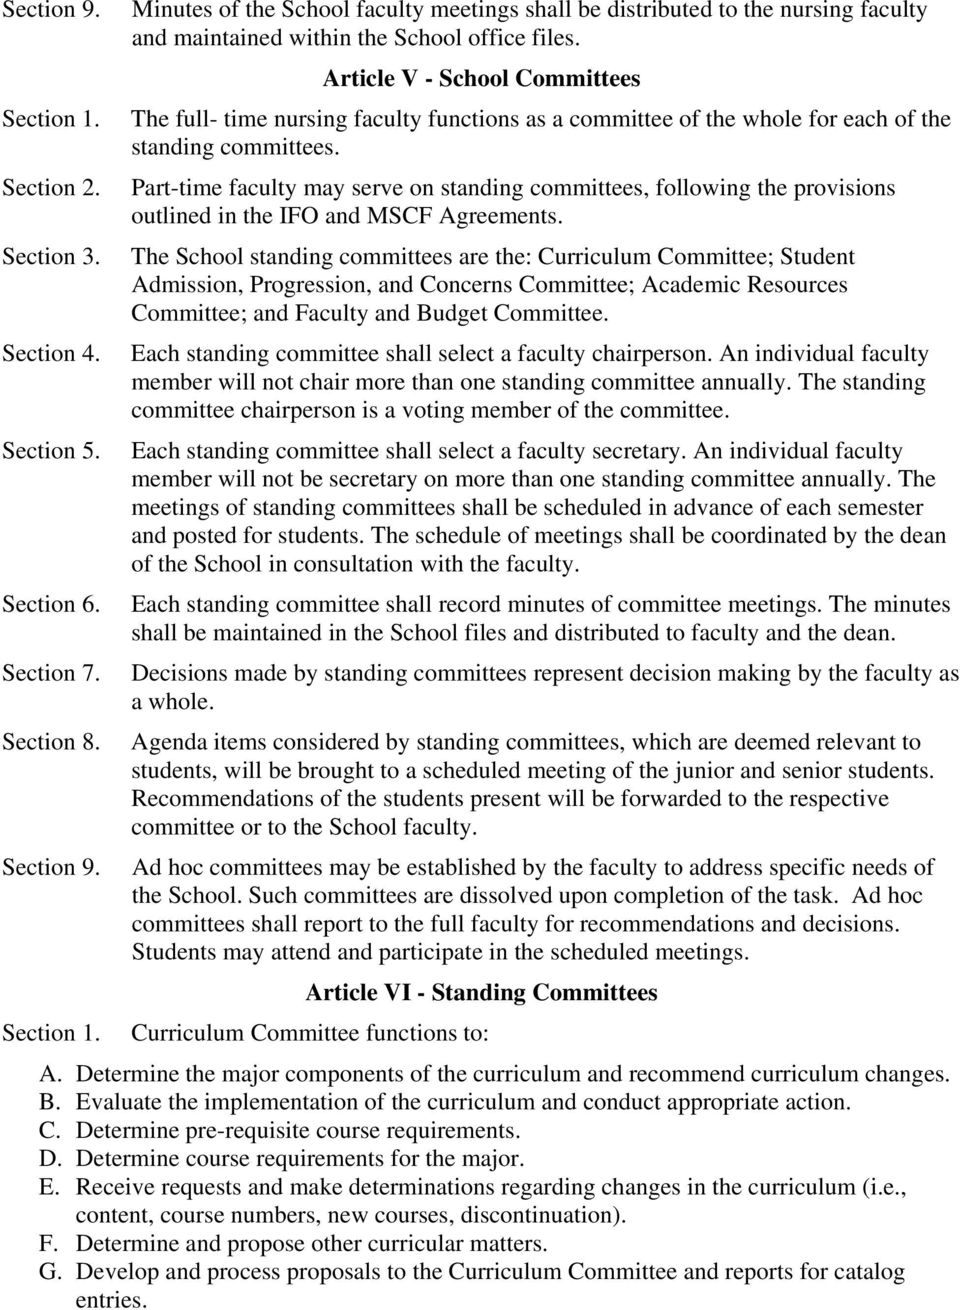 Part-time faculty may serve on standing committees, following the provisions outlined in the IFO and MSCF Agreements.